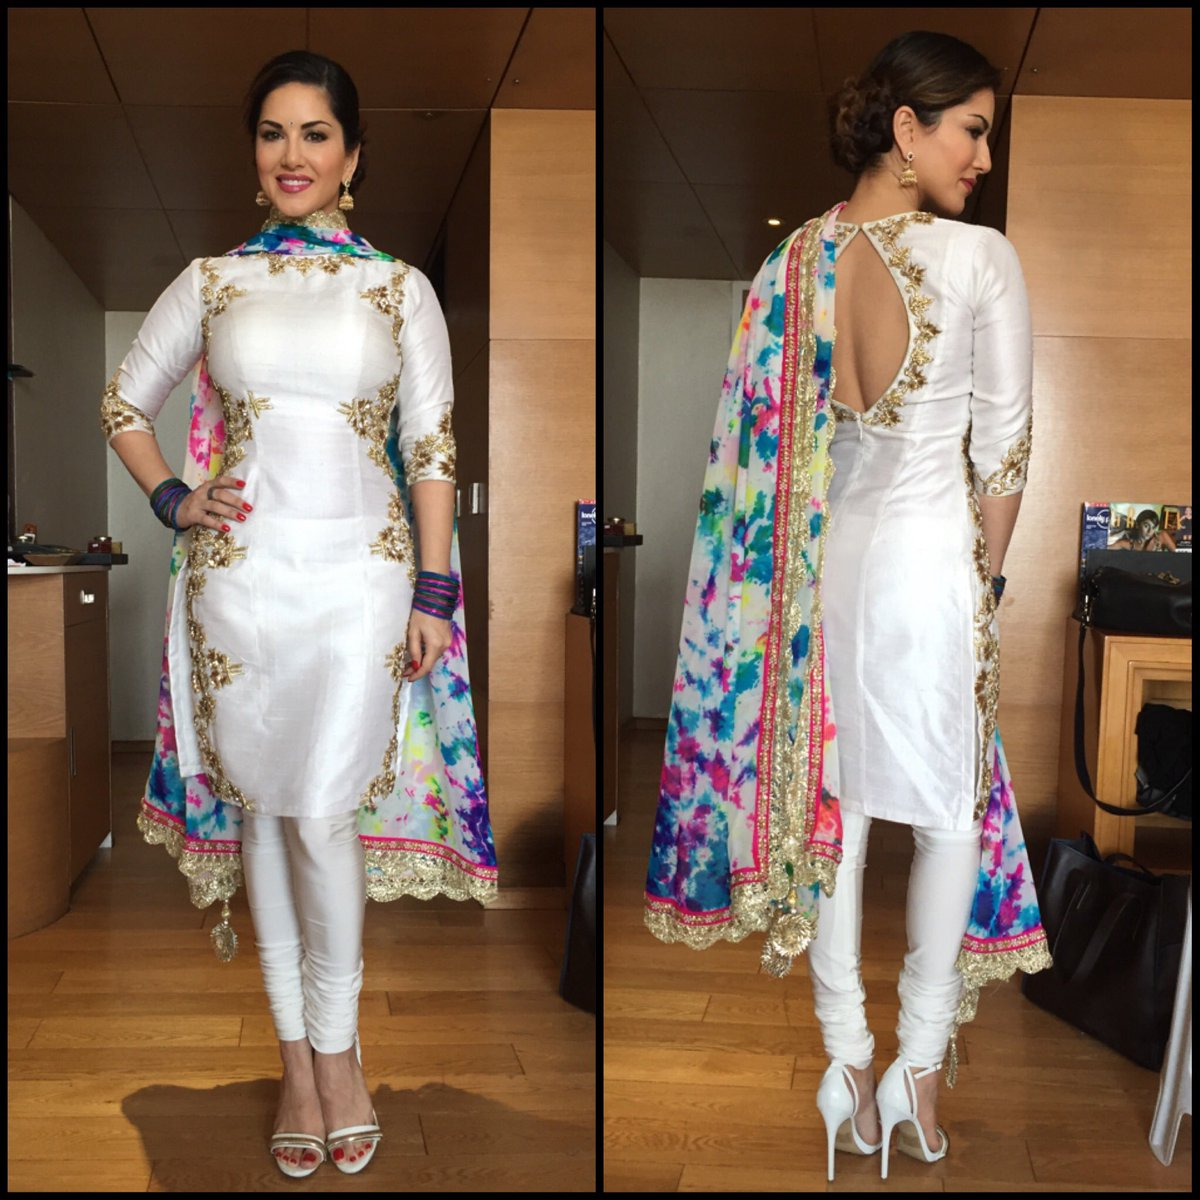 Thank you so much for this amazing Holi outfit and styling by love